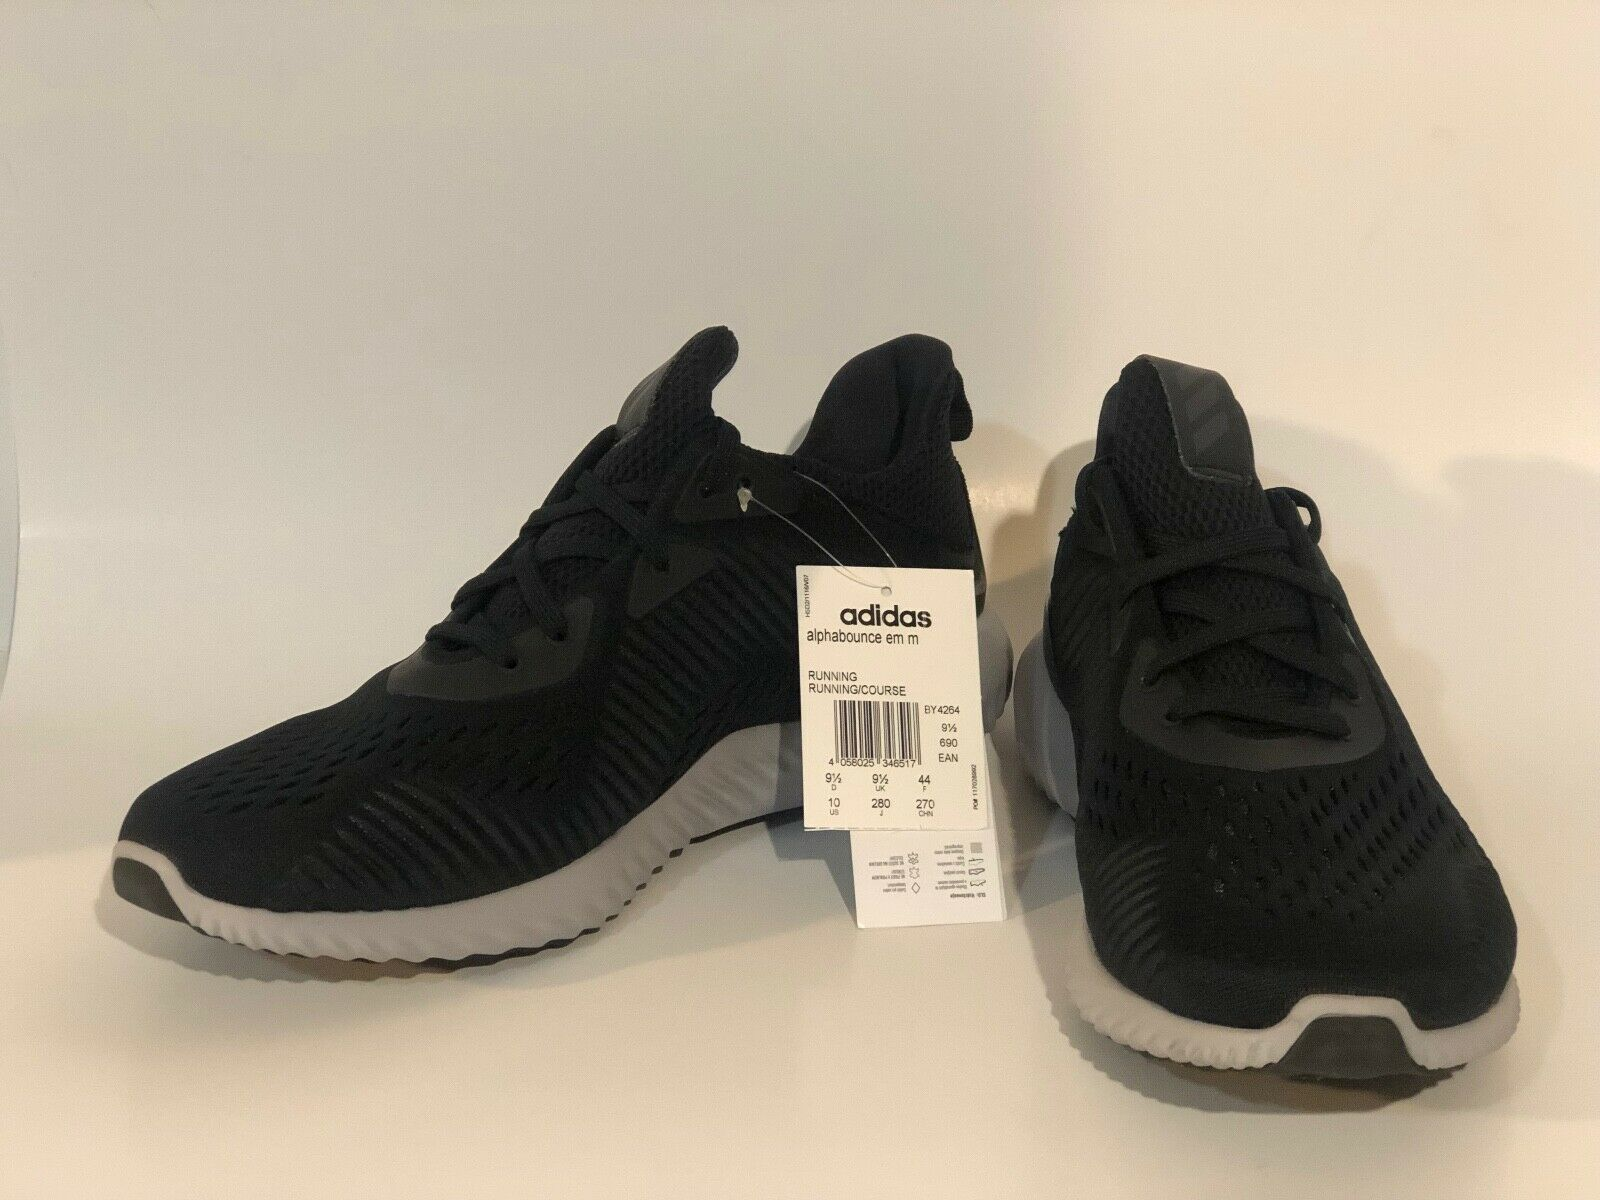 ADIDAS ALPHABOUNCE EM M SIZE 9.5, 10  BY4264 MENS SPORTS SNEAKER BLACK WHITE